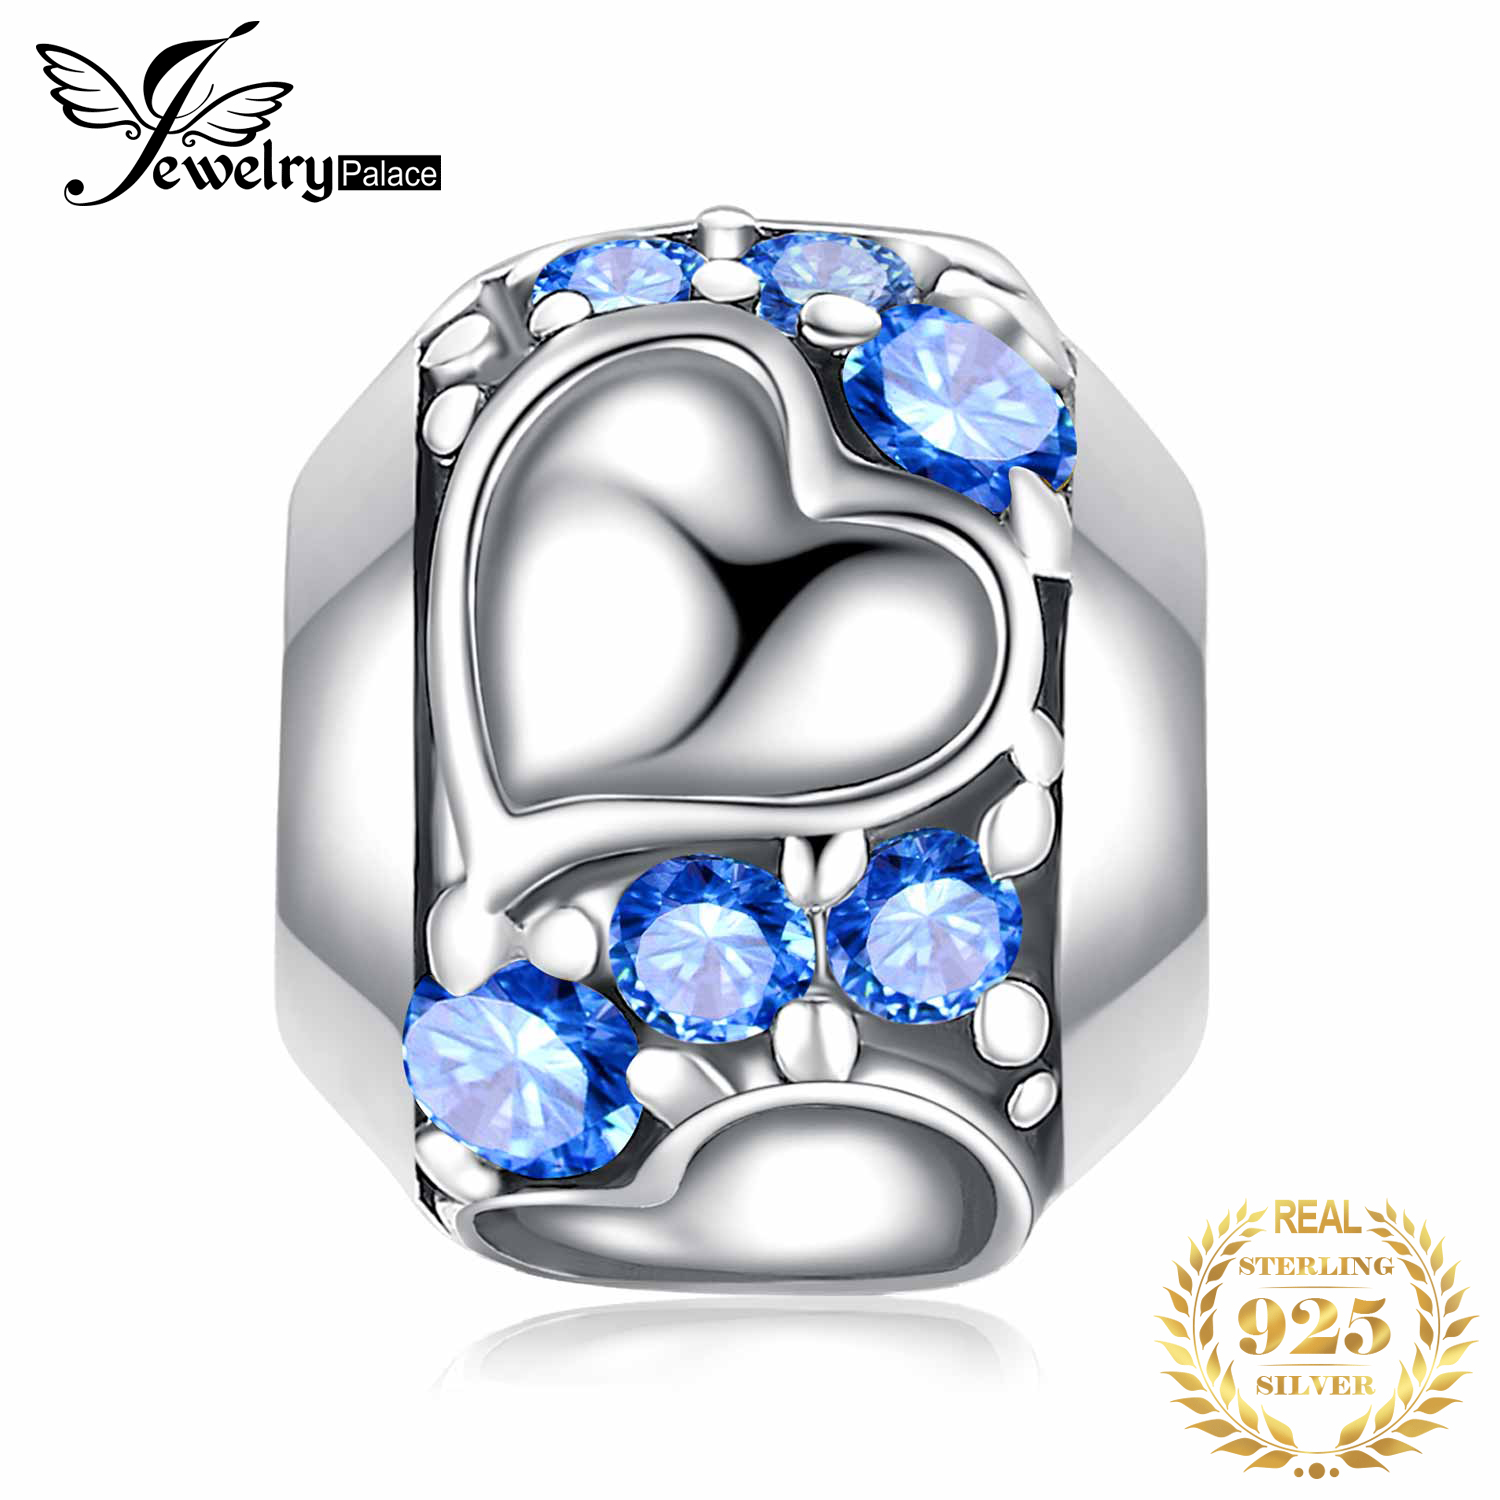 JewelryPalace Faithful Heart 0.4ct Blue Cubic Zirconia 925 Sterling Silver Charm Beads New Hot Sale Beautiful Gifts